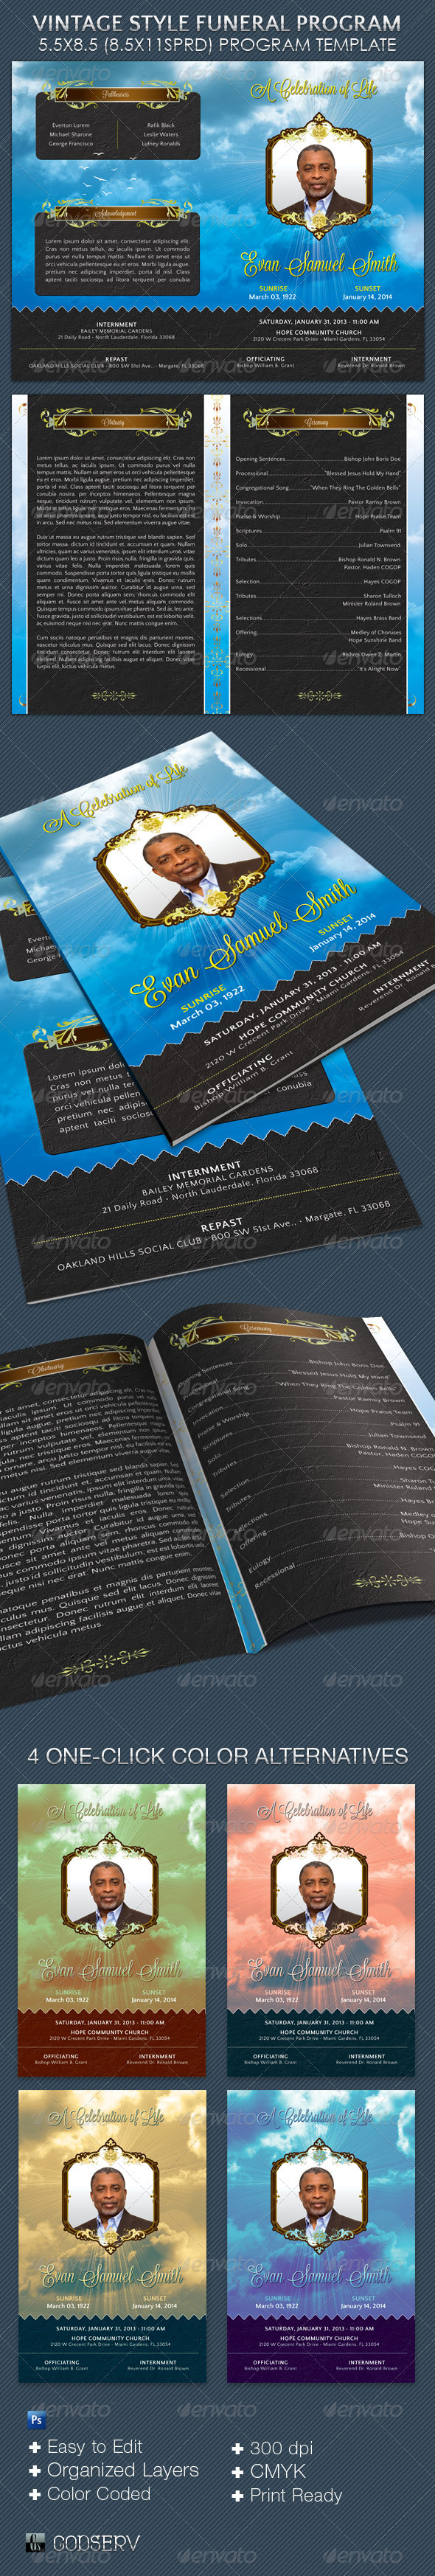 GraphicRiver Vintage Style Funeral Program Template 3883647